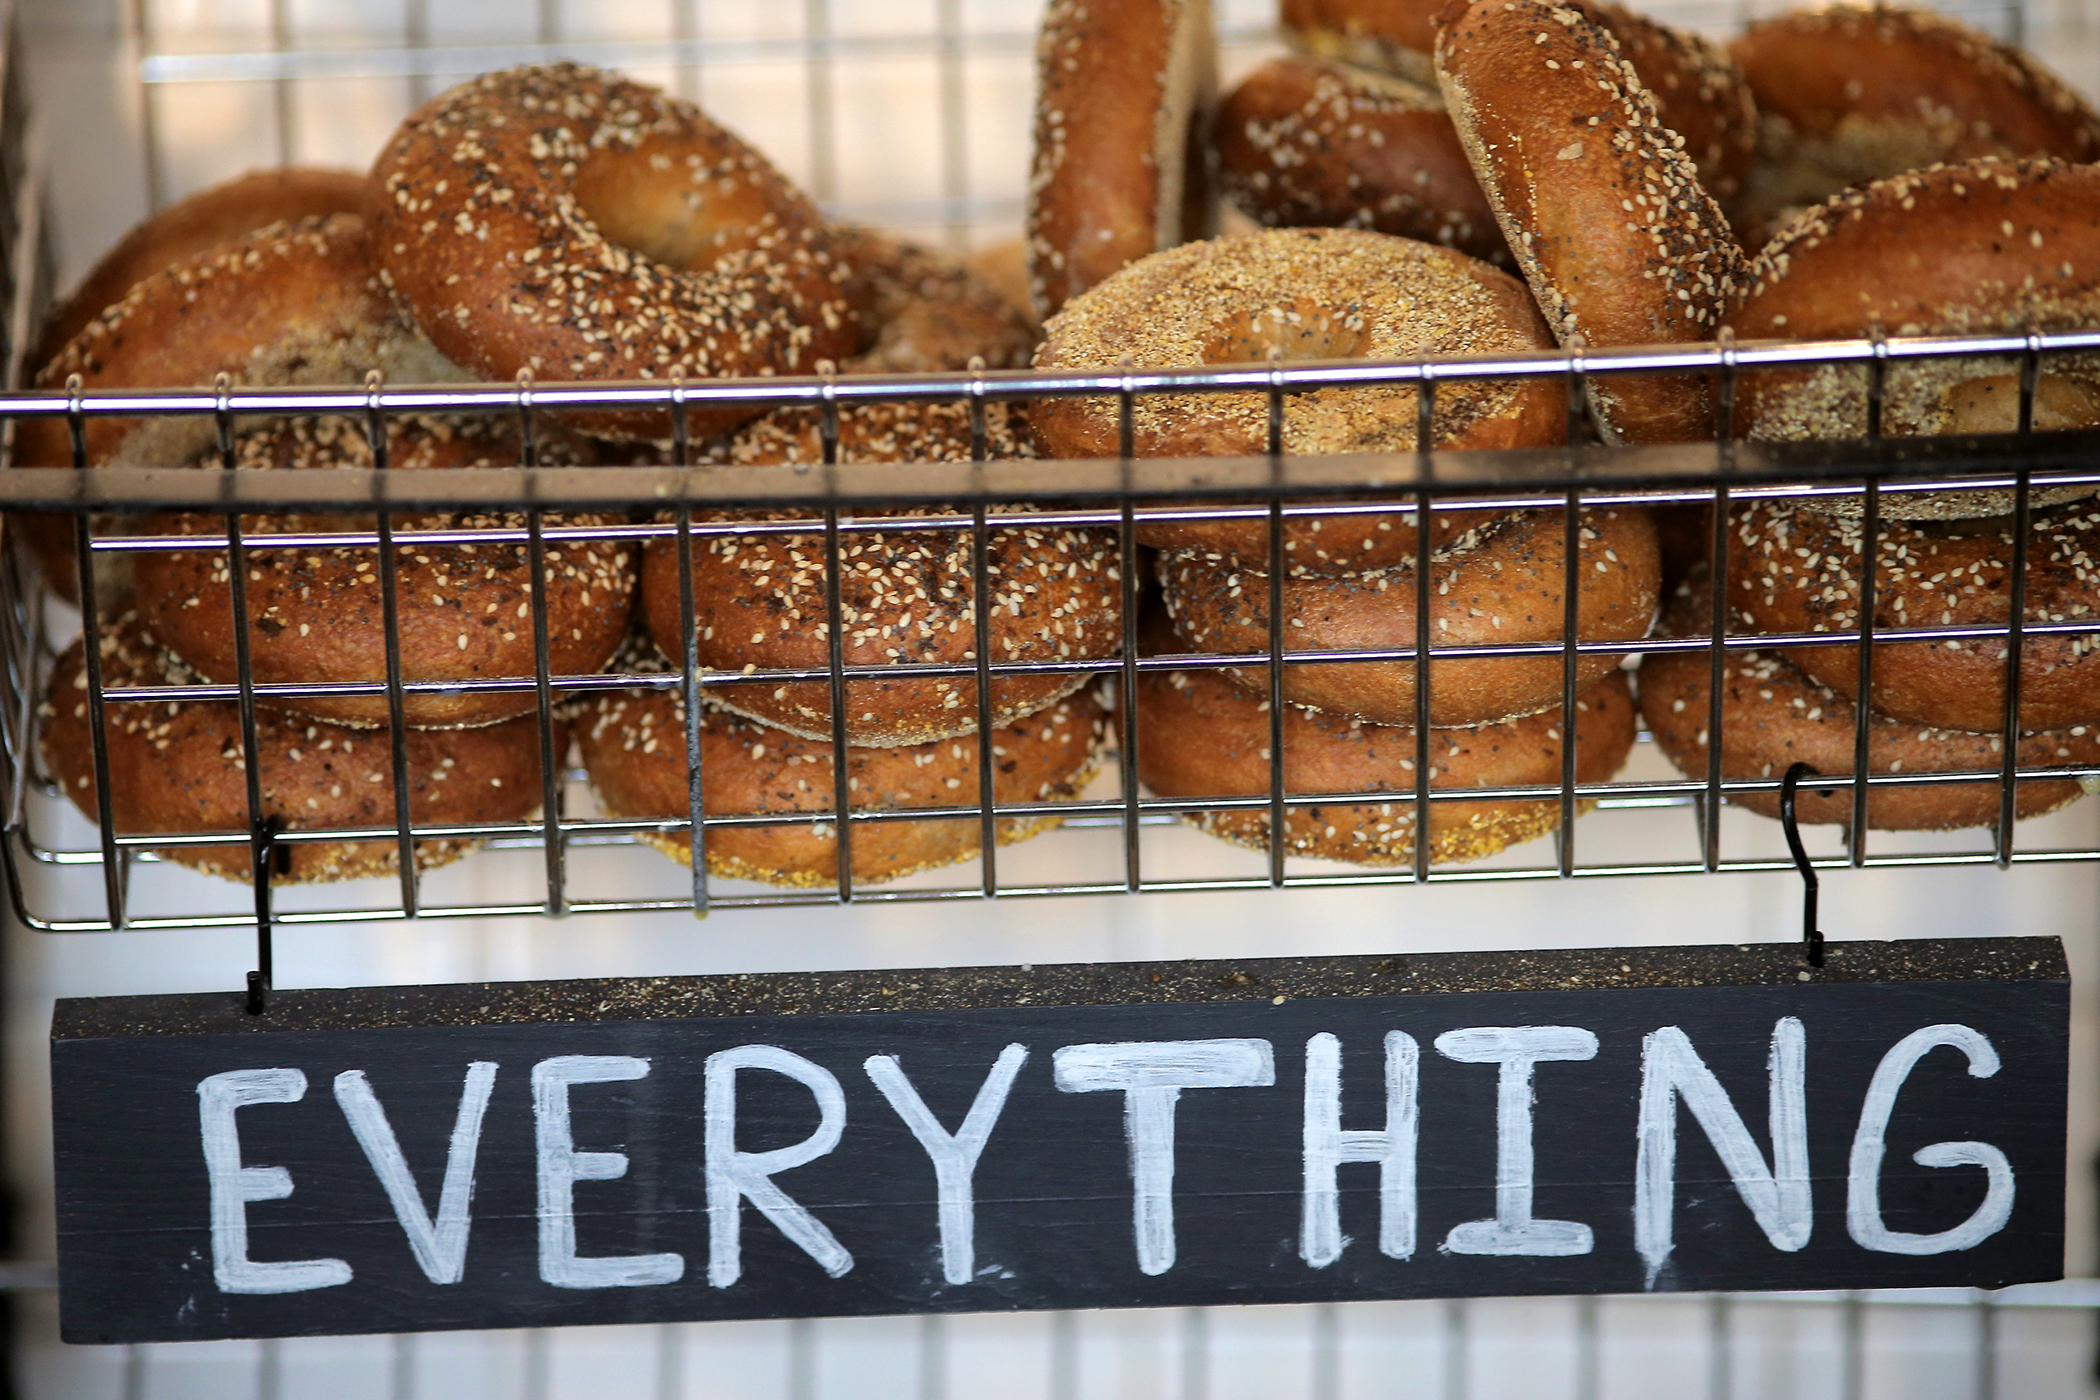 Freshly baked bagels are pictured at One Mighty Mill in Lynn, MA on Sep. 13, 2018.